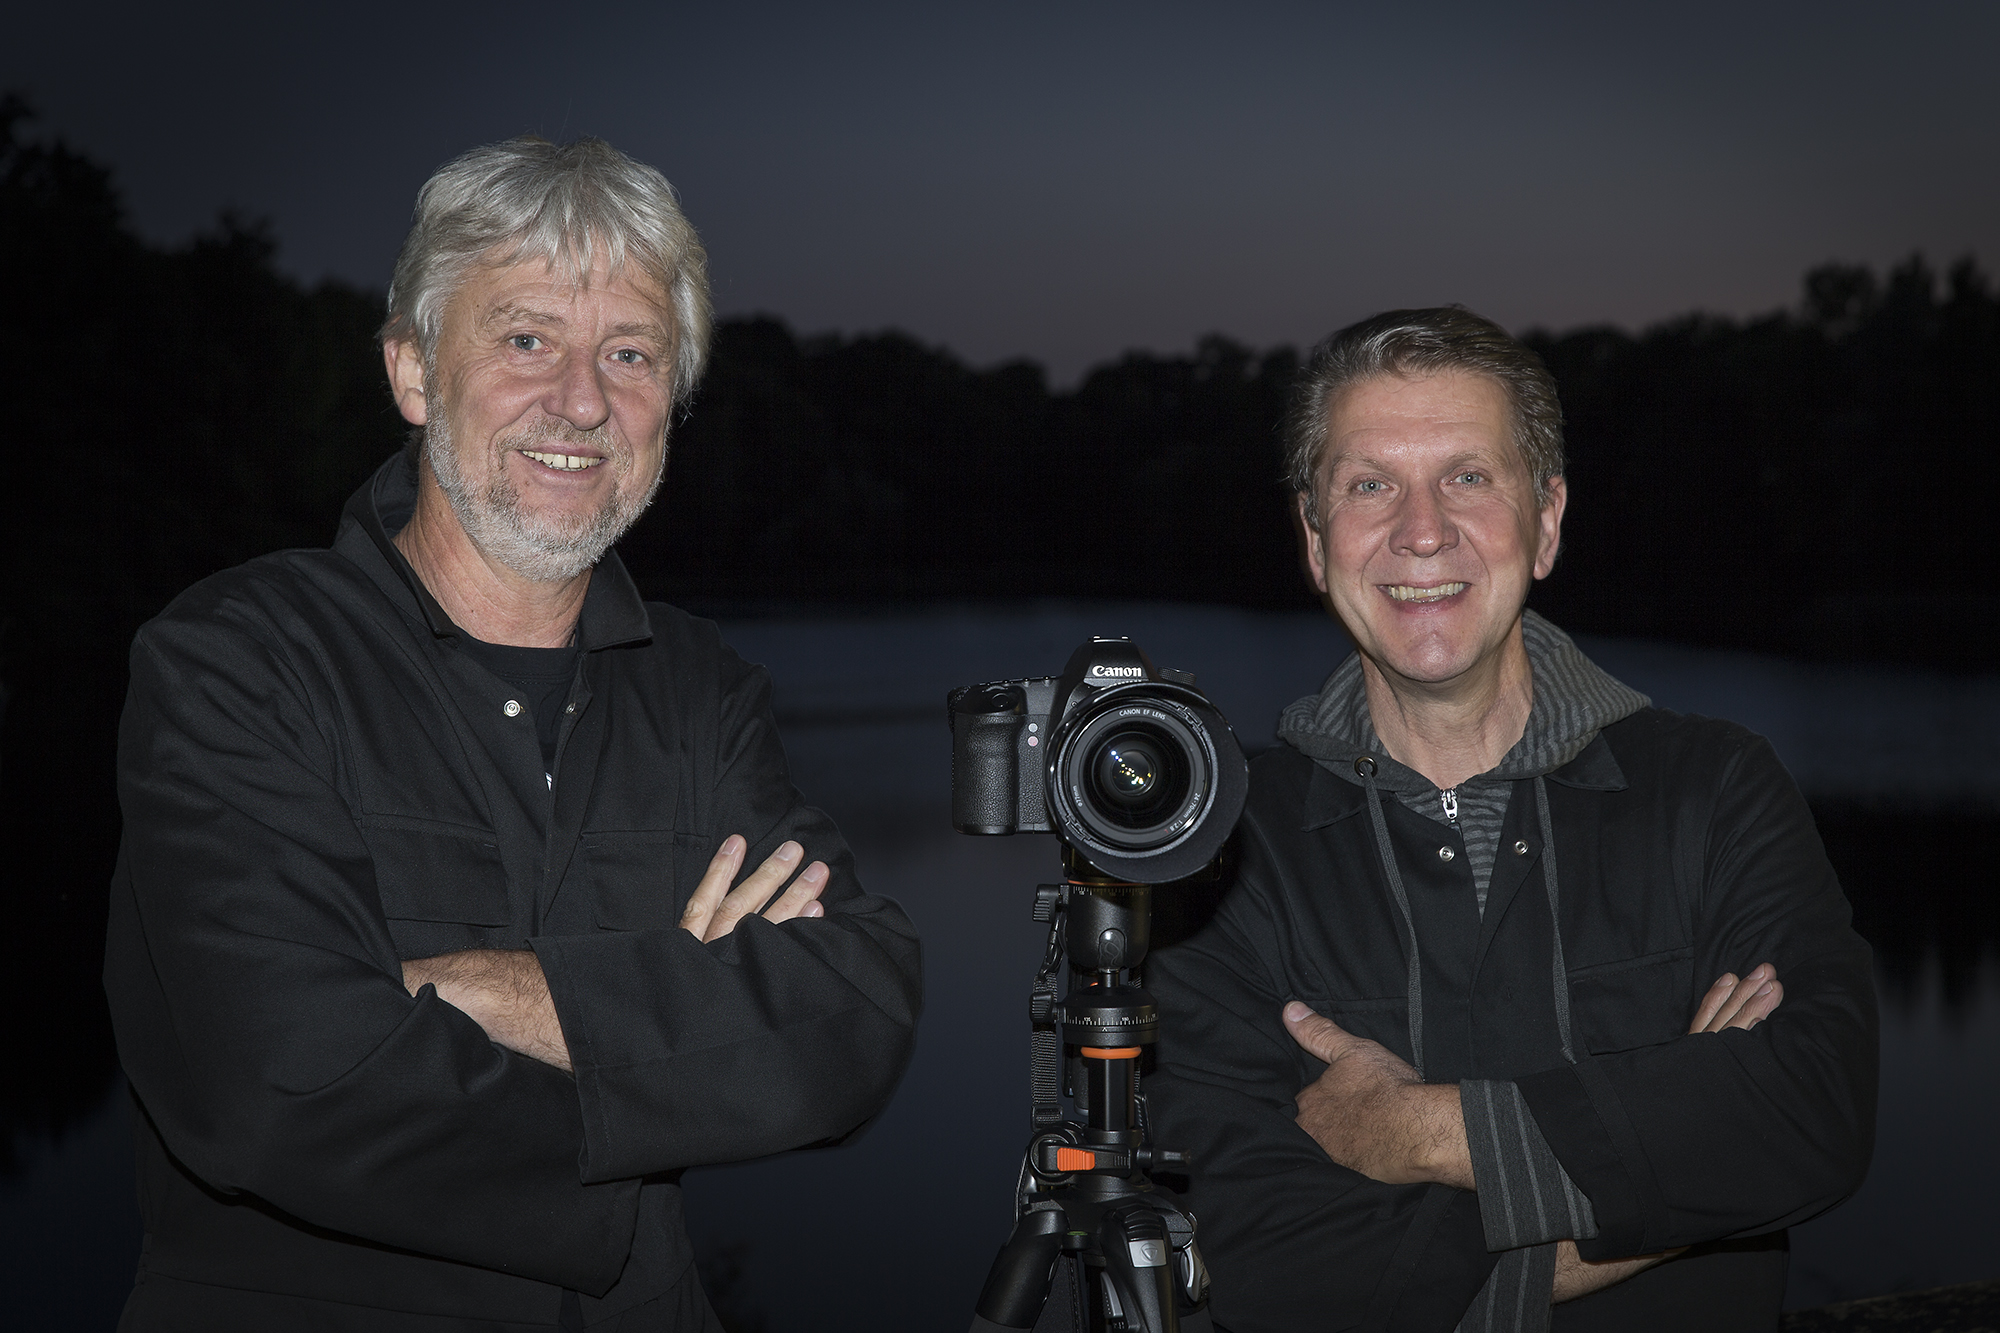 World of Lightpainting - Klaus Schwinges & Andre Henneberg